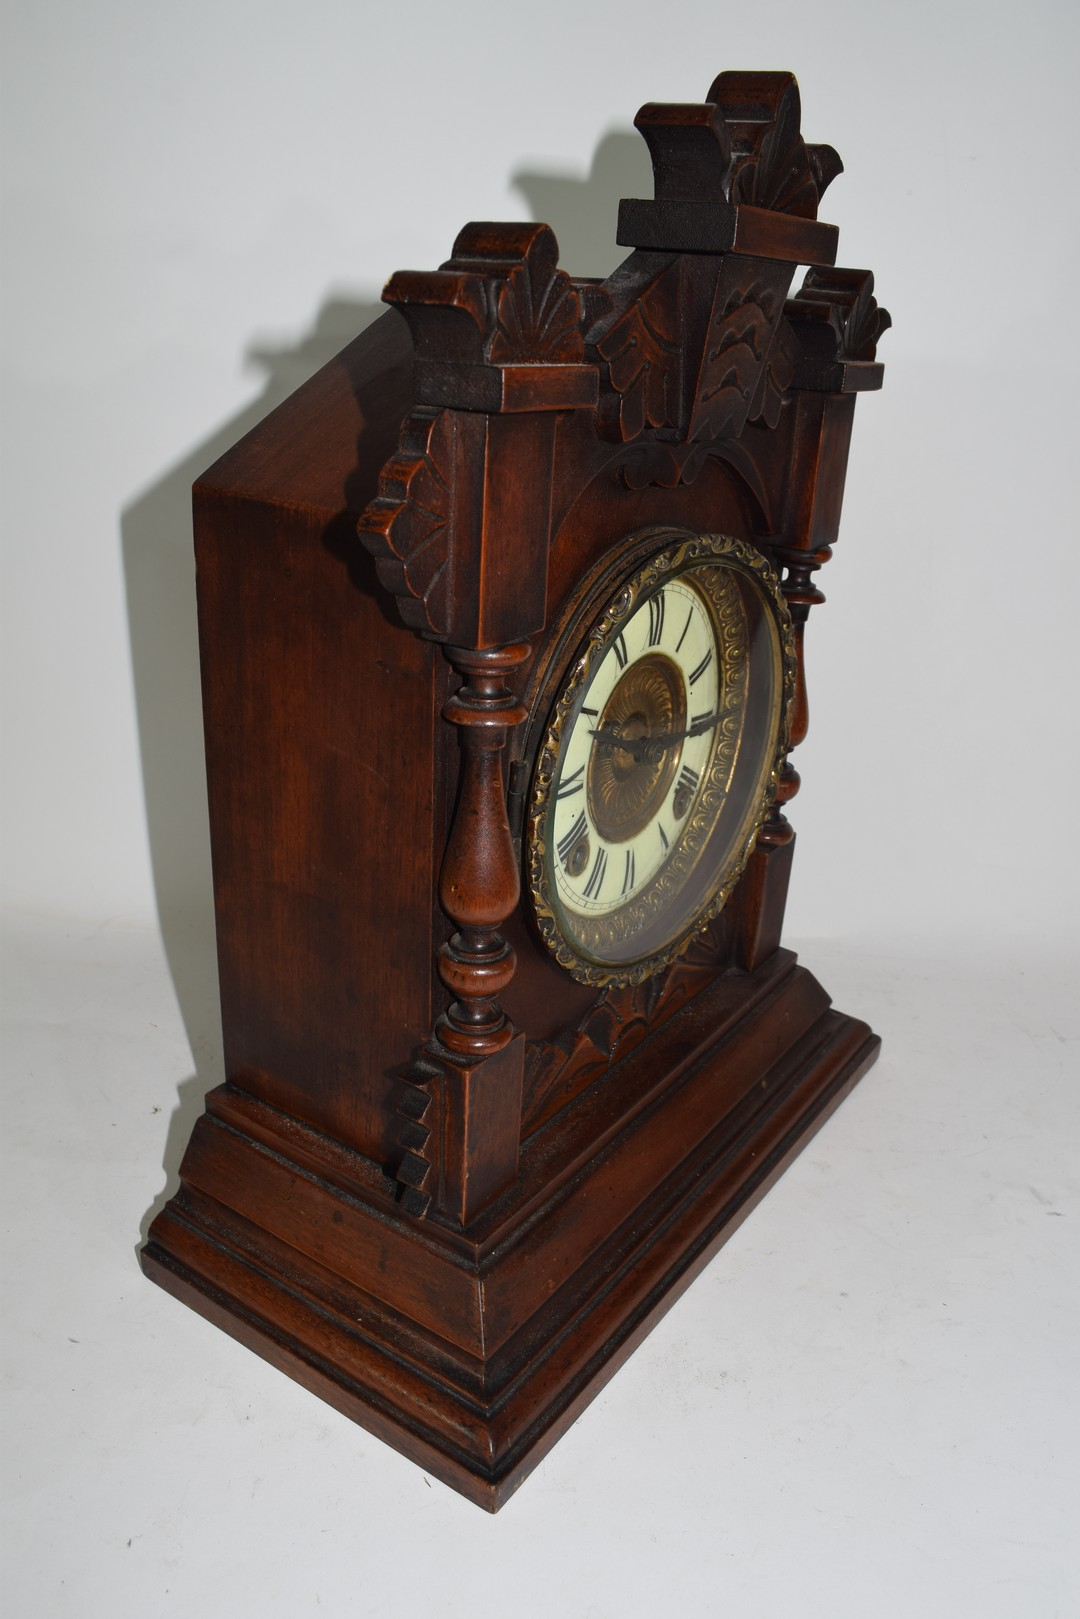 Late 19th century mantel clock by Ansona of New York - Image 2 of 6